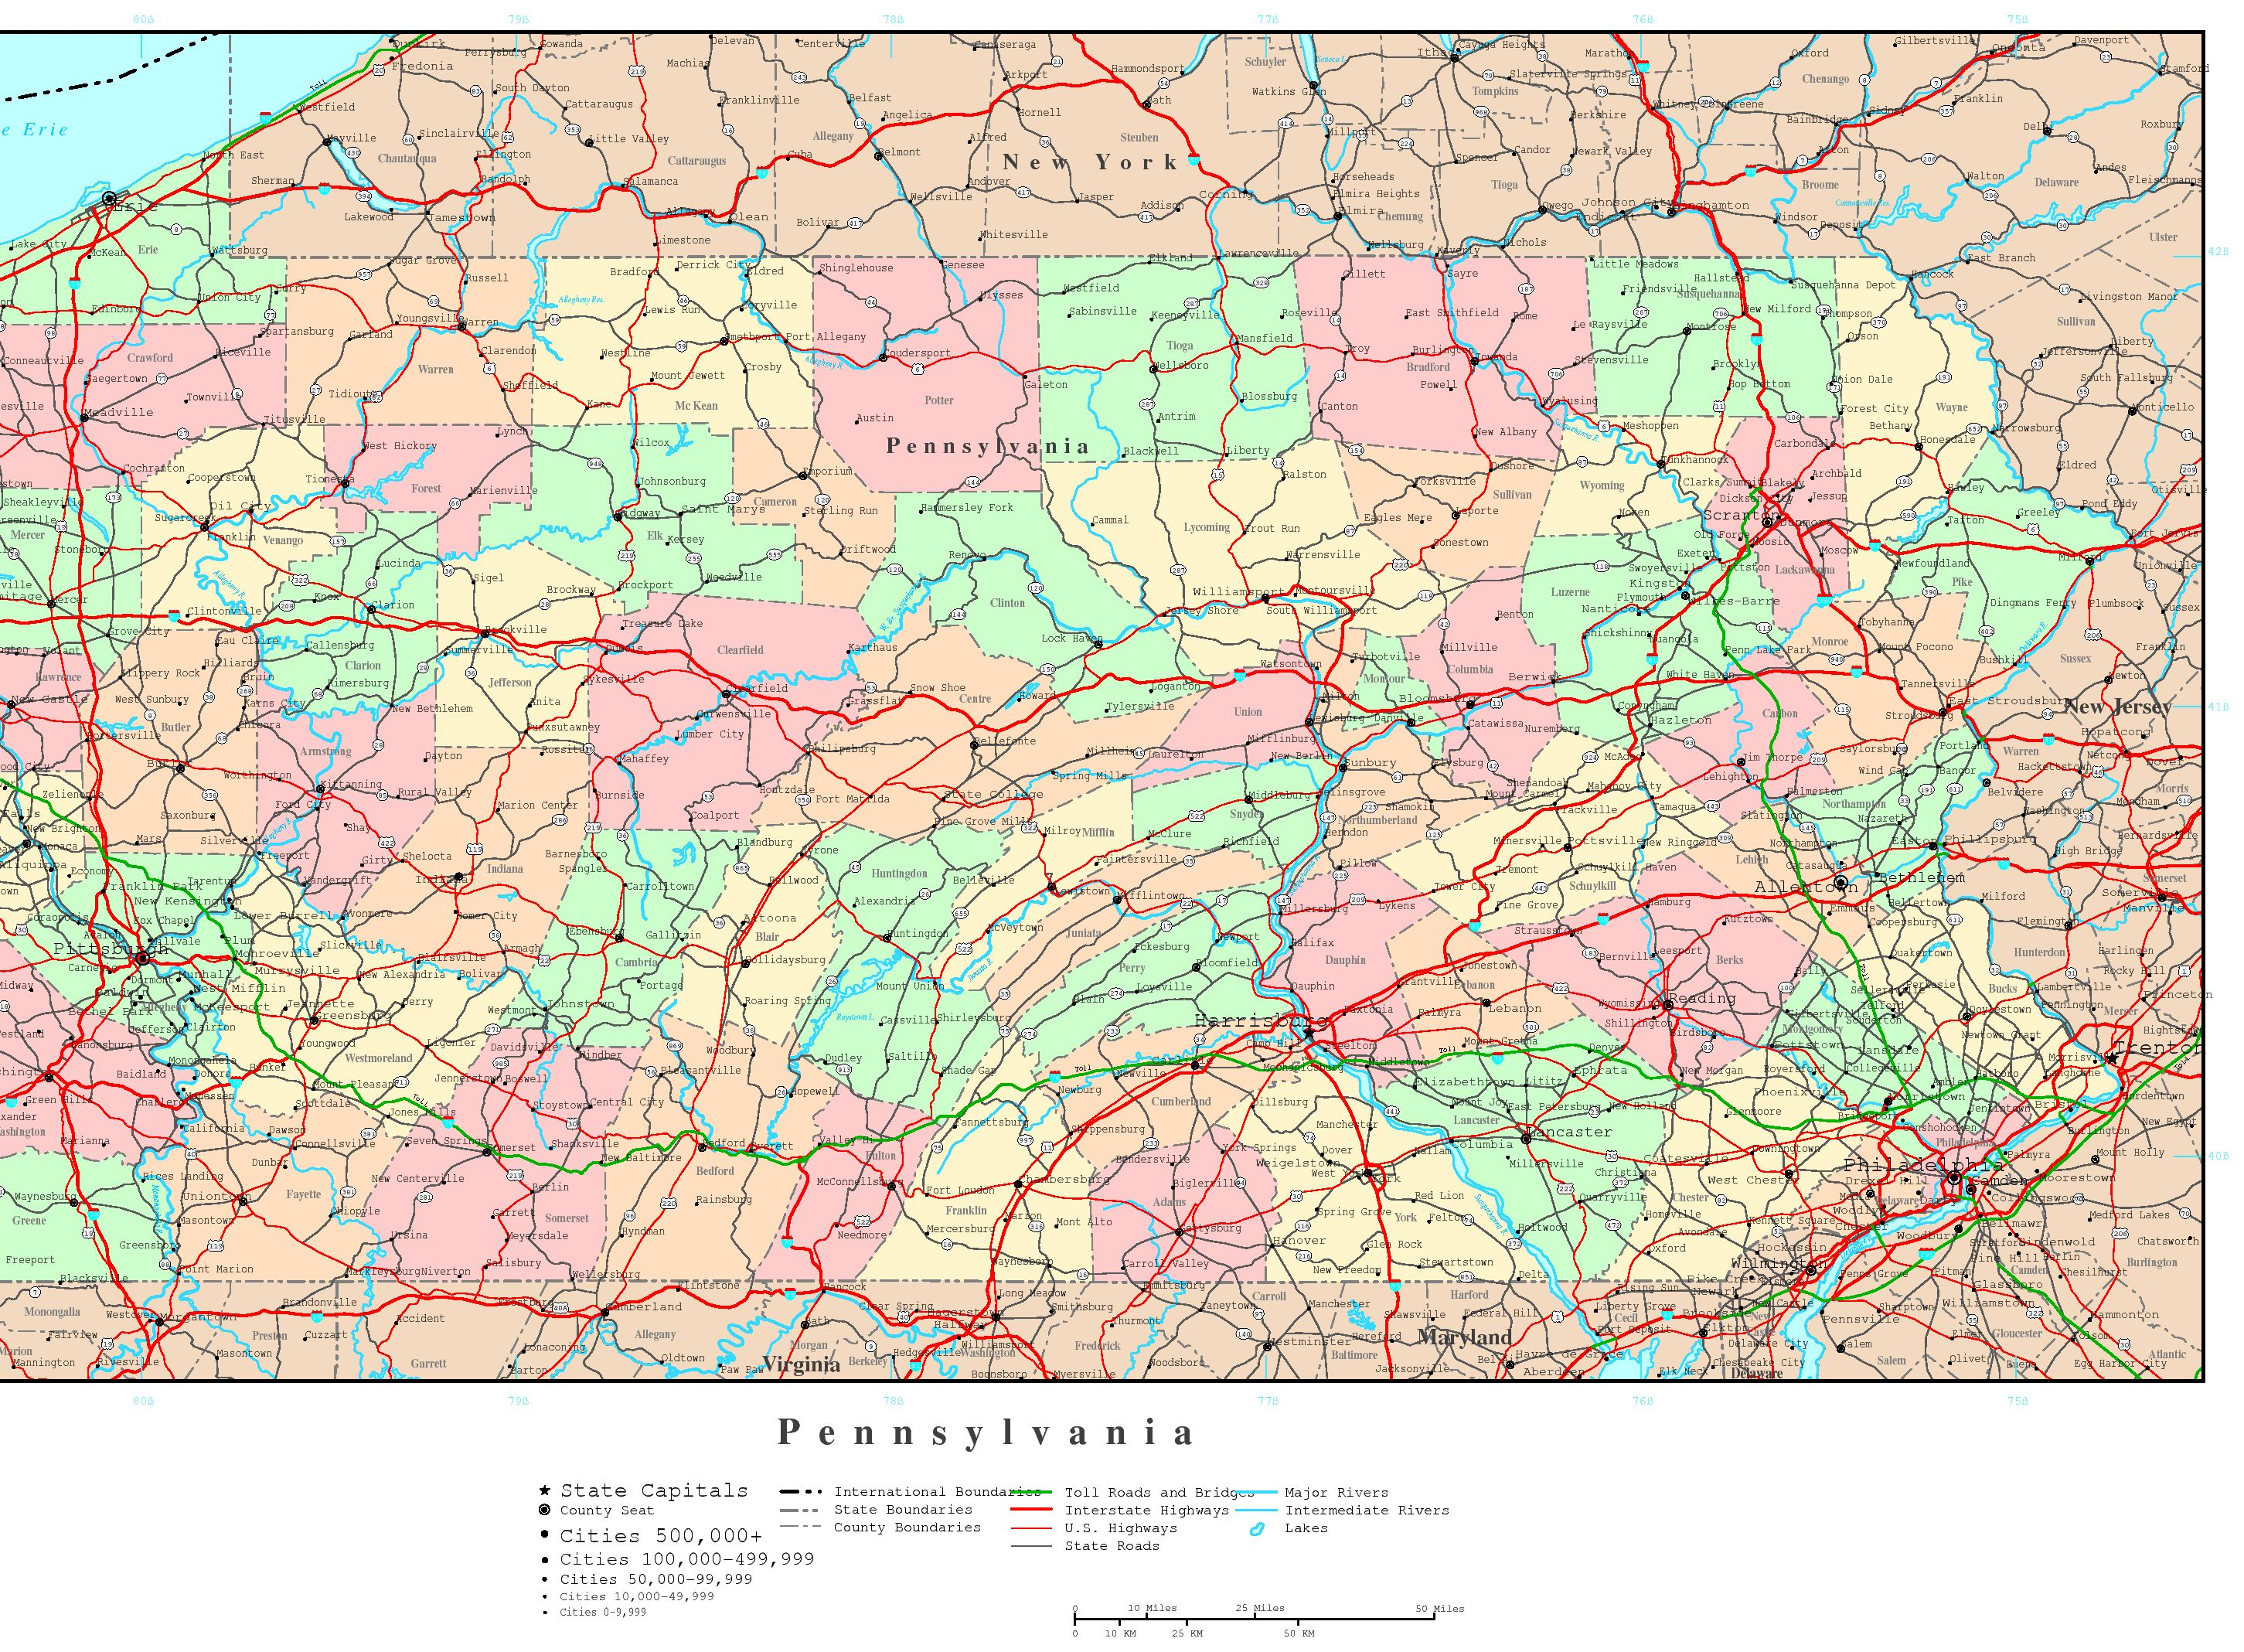 Pennsylvania Political Map - Pennyslvania map